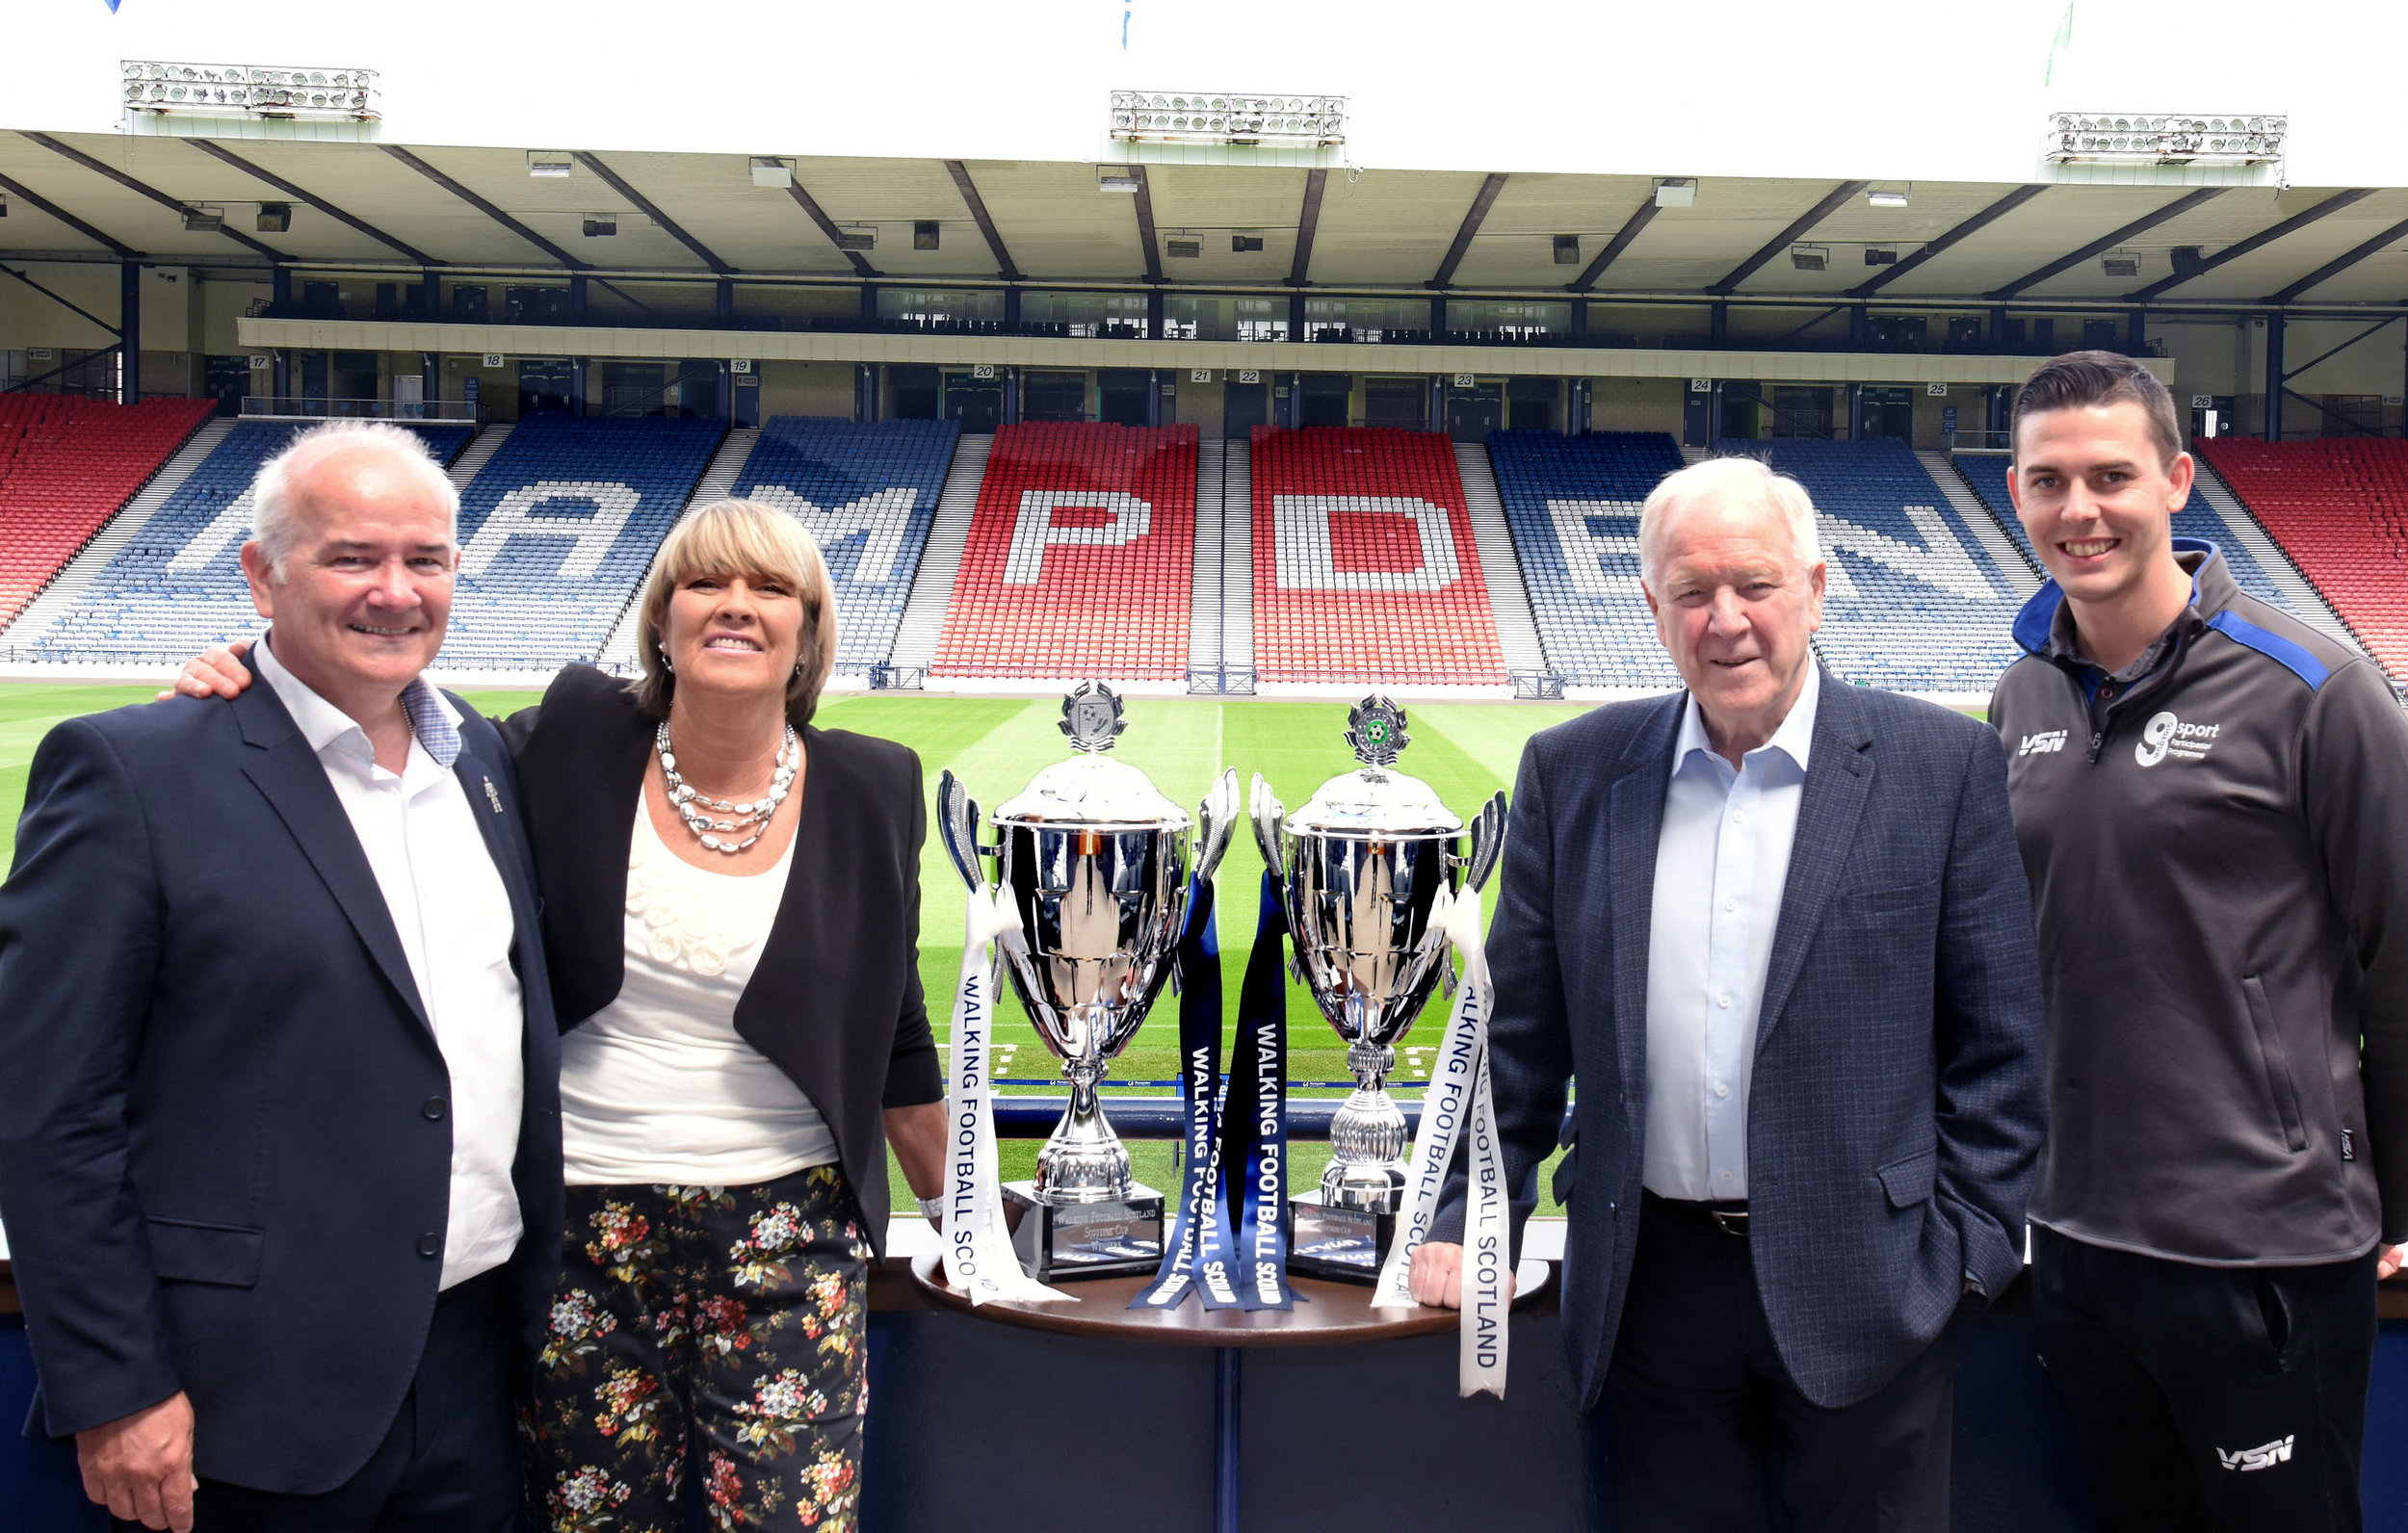 l-r Gary McLaughlin and Rose Reilly beside the Over 50's Scottish Cup, Craig Brown and Matt Ramsay closest to the new Over 65's Scottish Cup